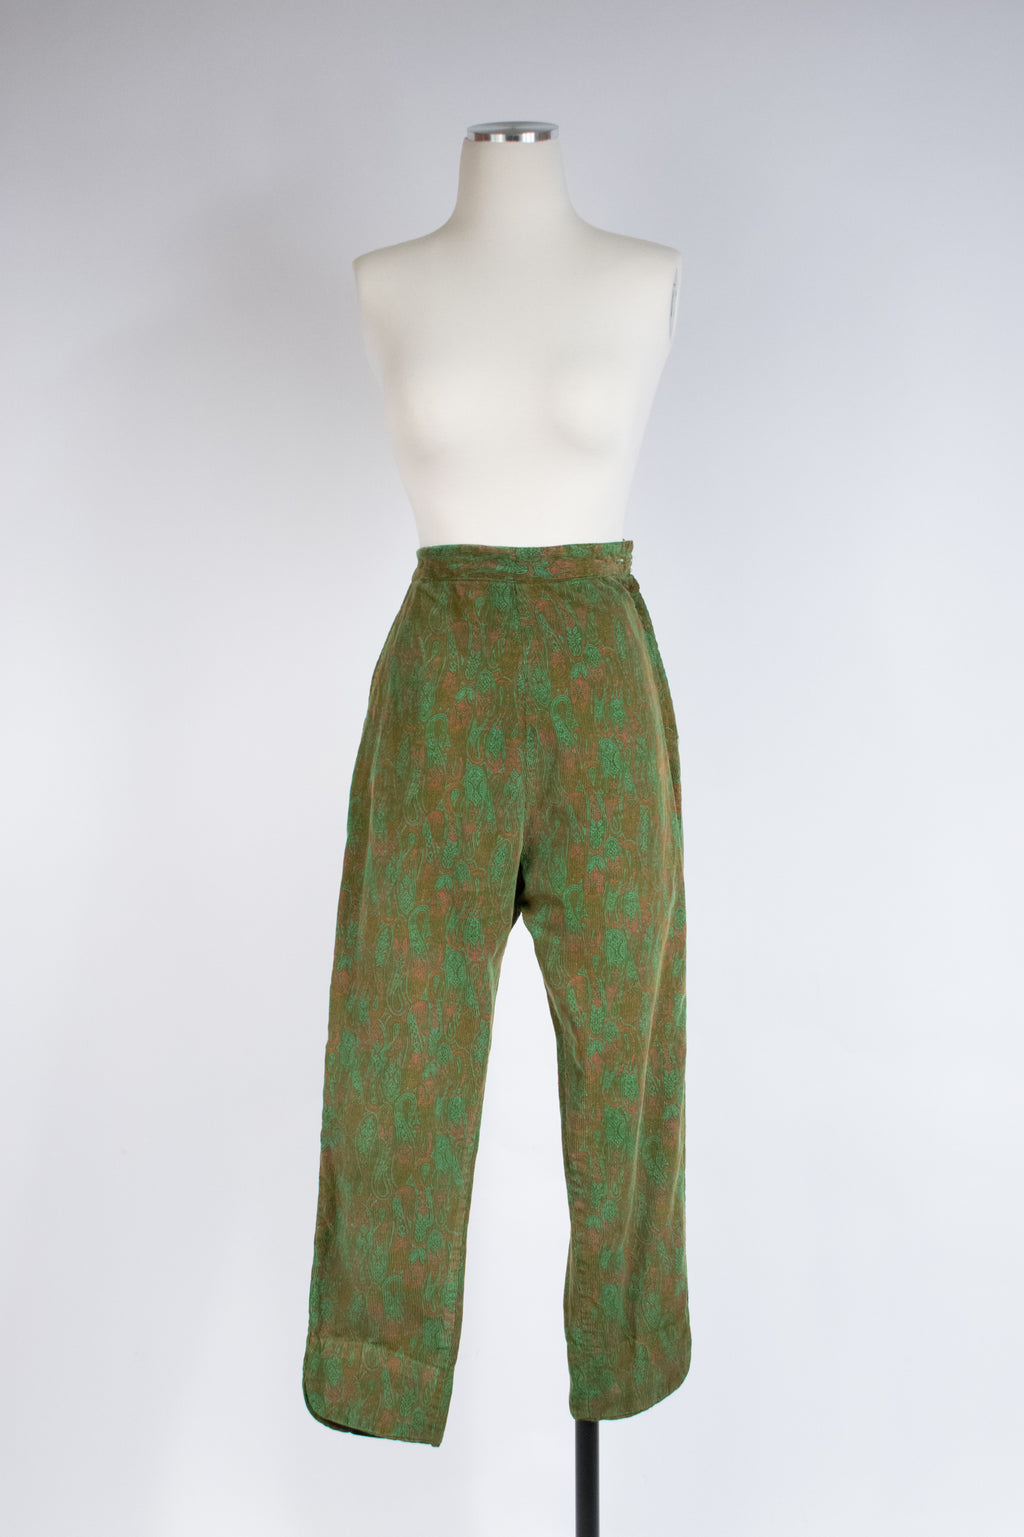 Fantastic 1960s High Waist Corduroy Cigarette Pants in Paisley Print